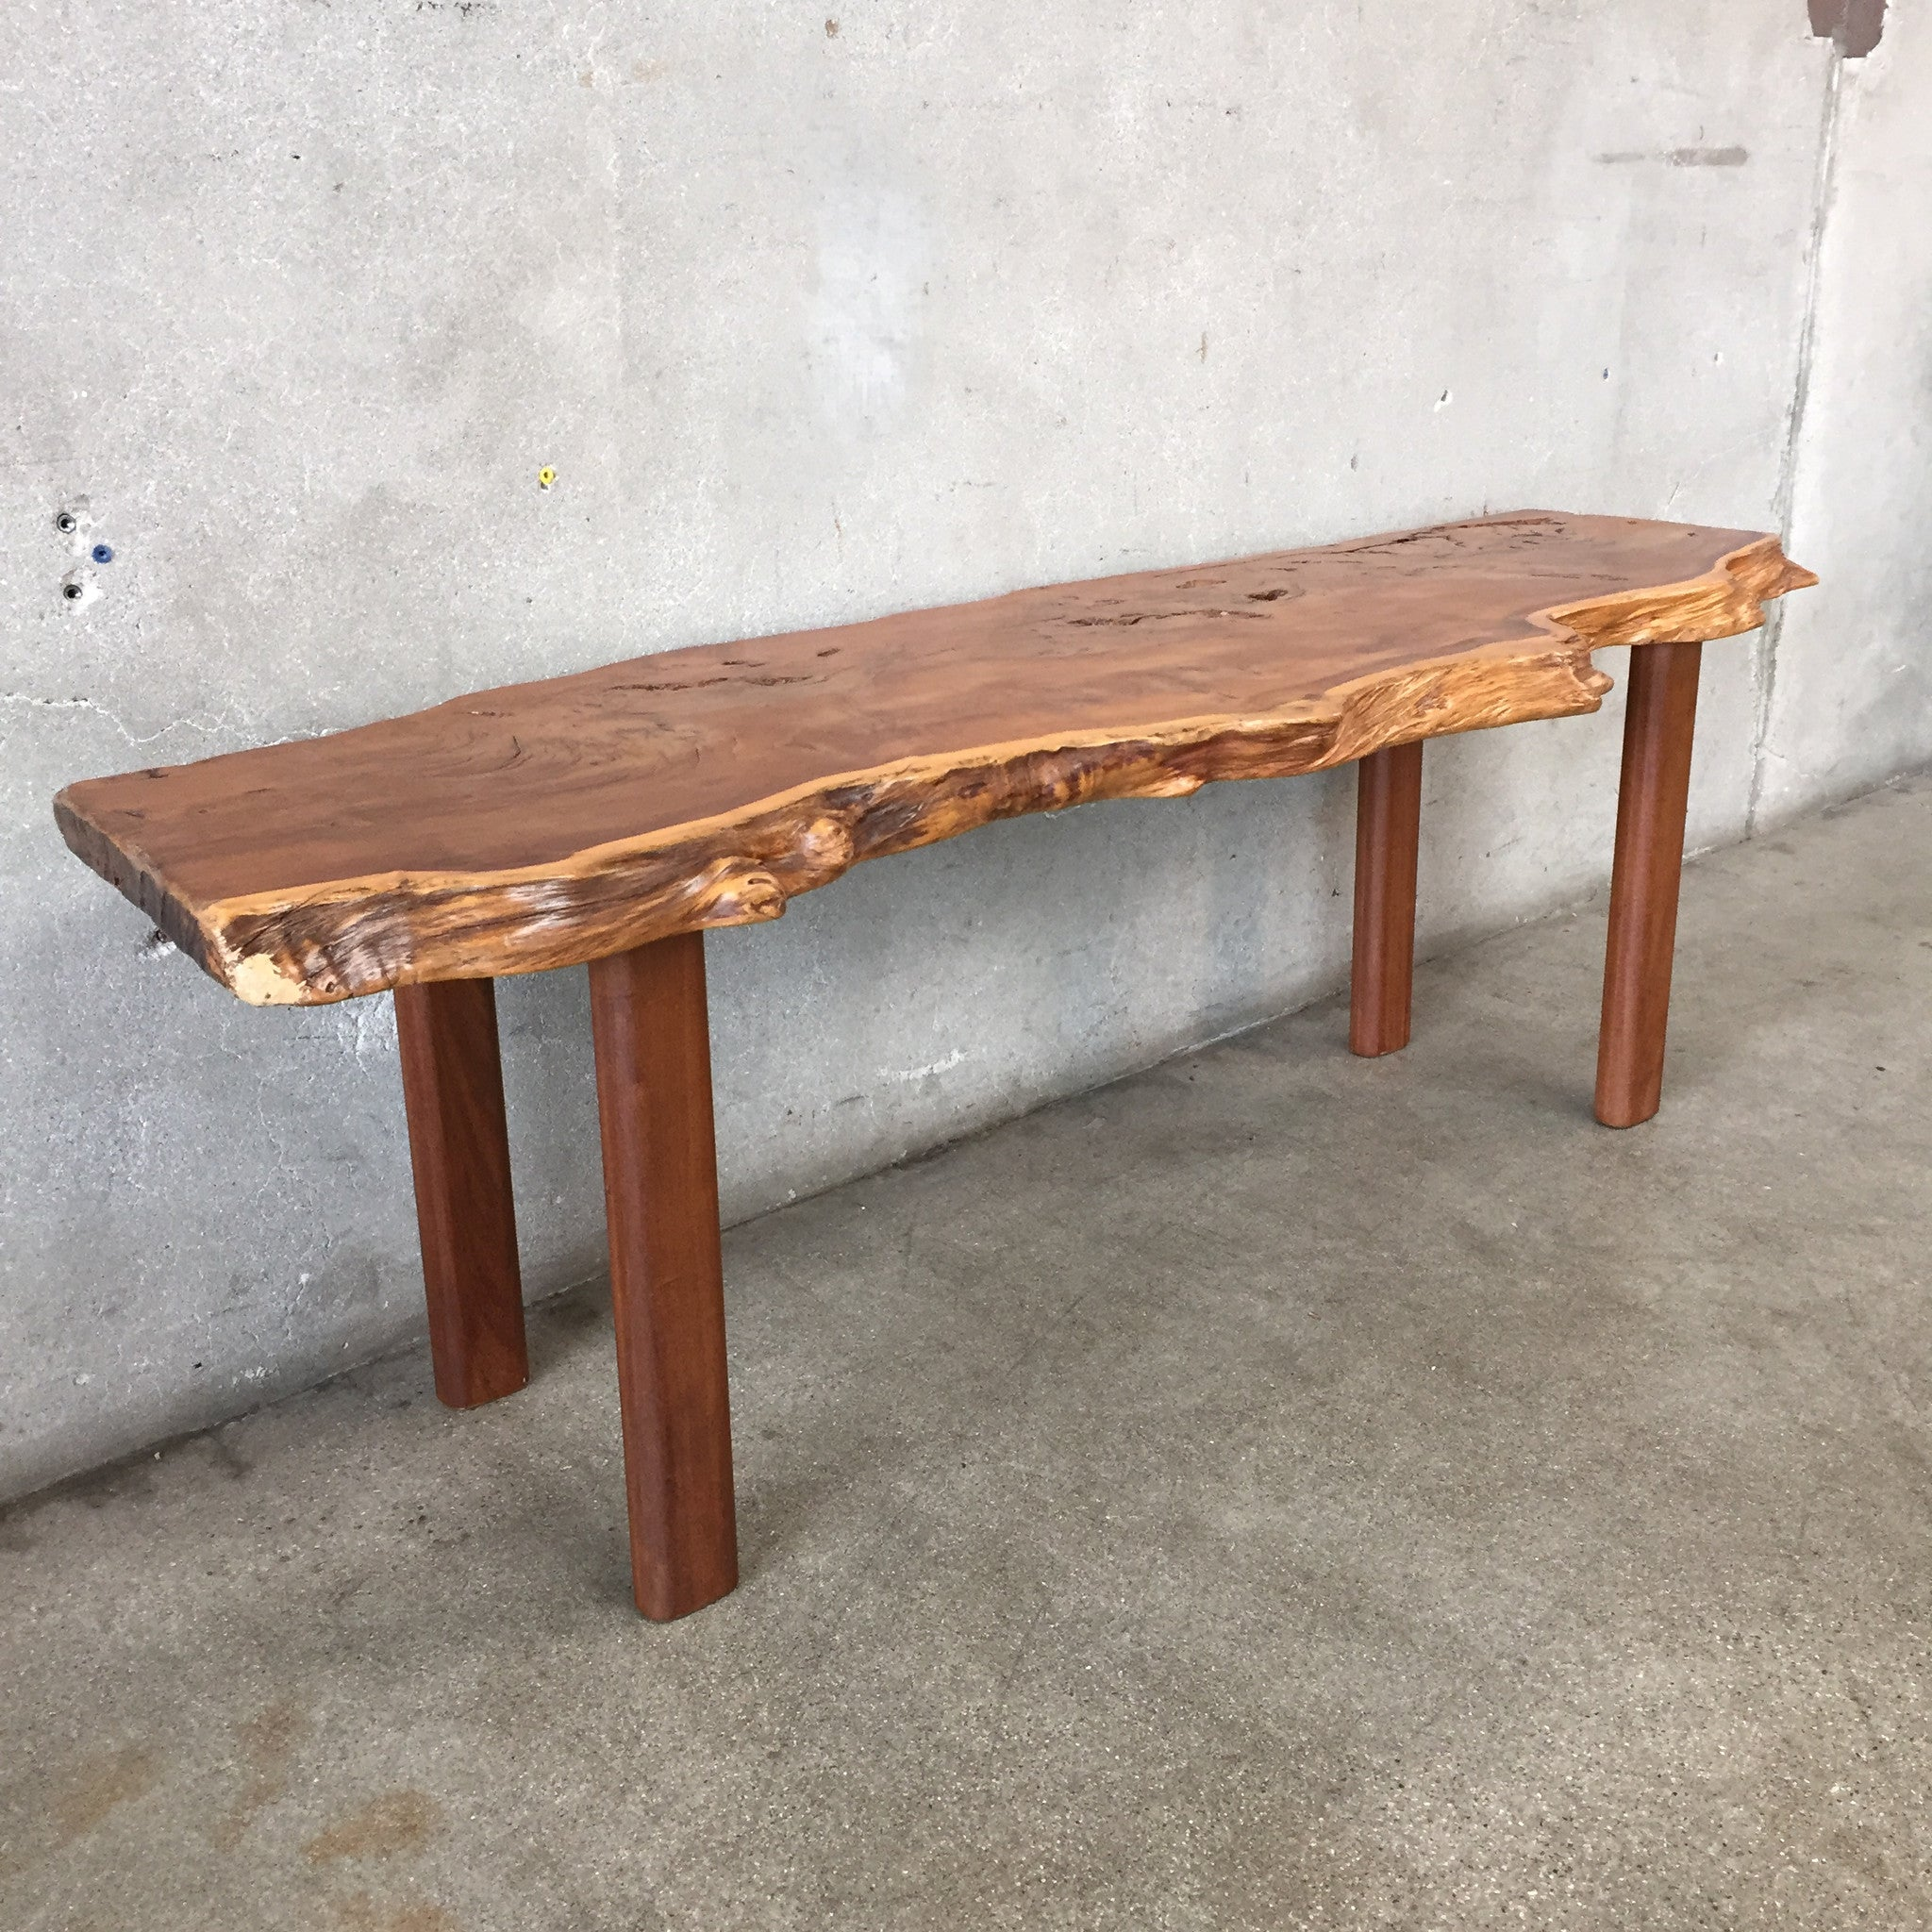 Yew Wood Live Edge Slab Coffee Table – UrbanAmericana